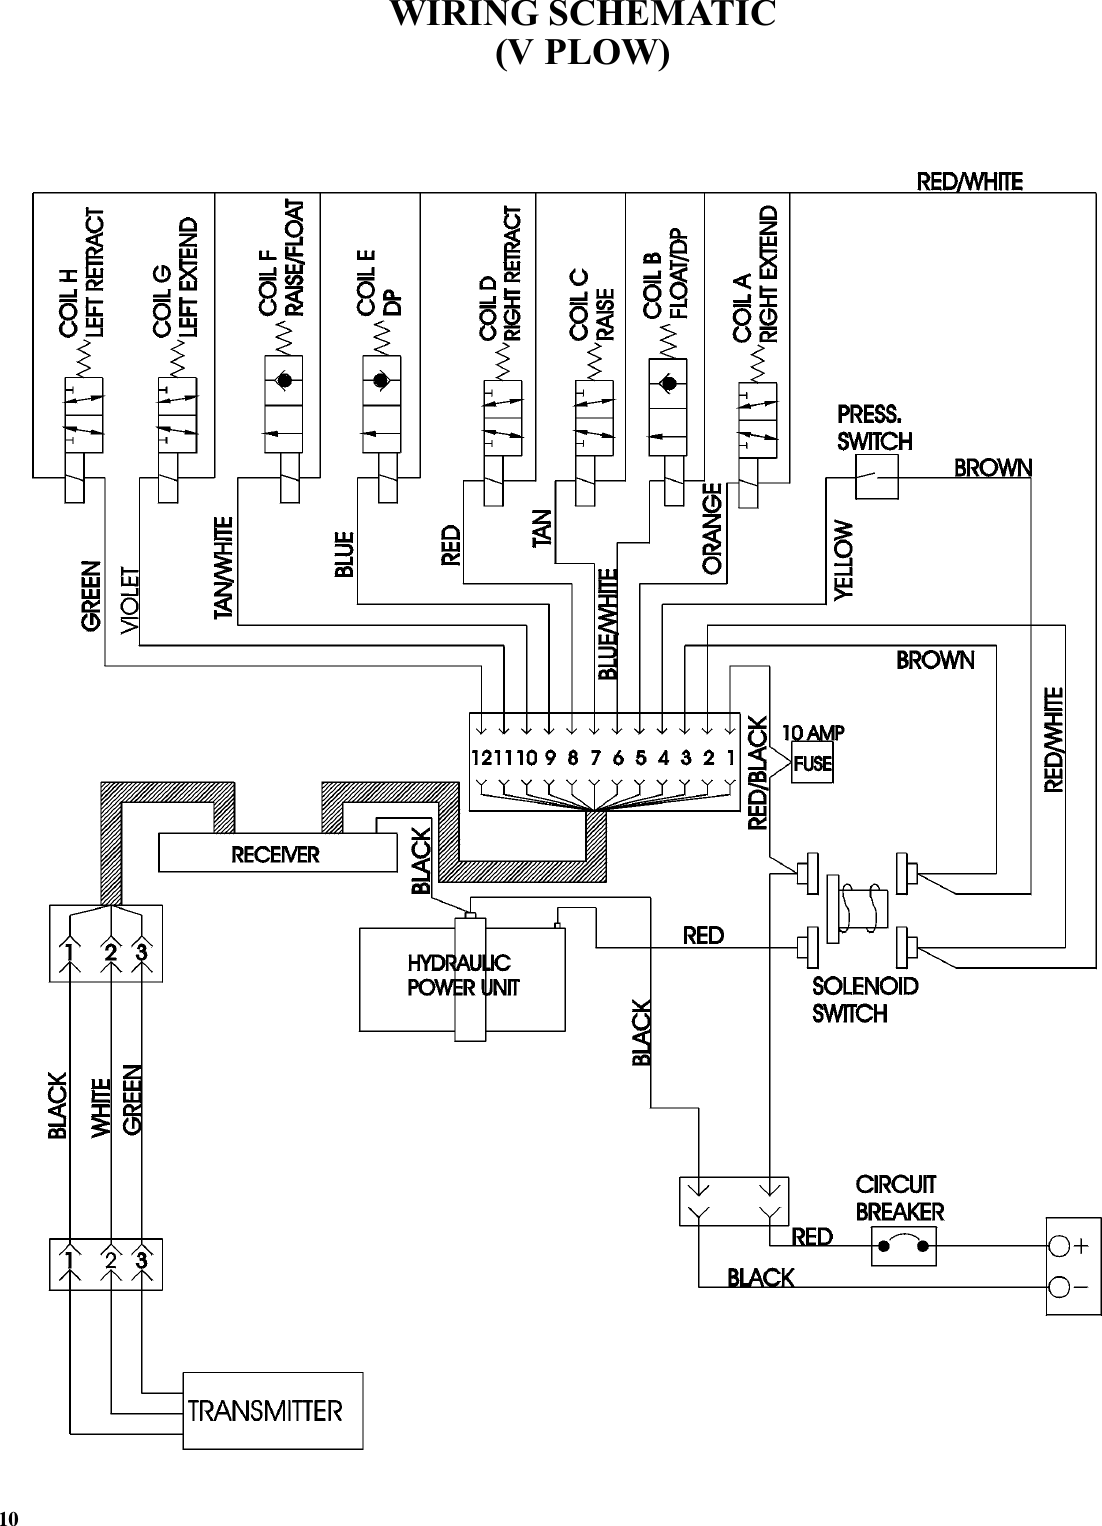 [DIAGRAM] Serial Db15 Joystick Wiring Diagram FULL Version